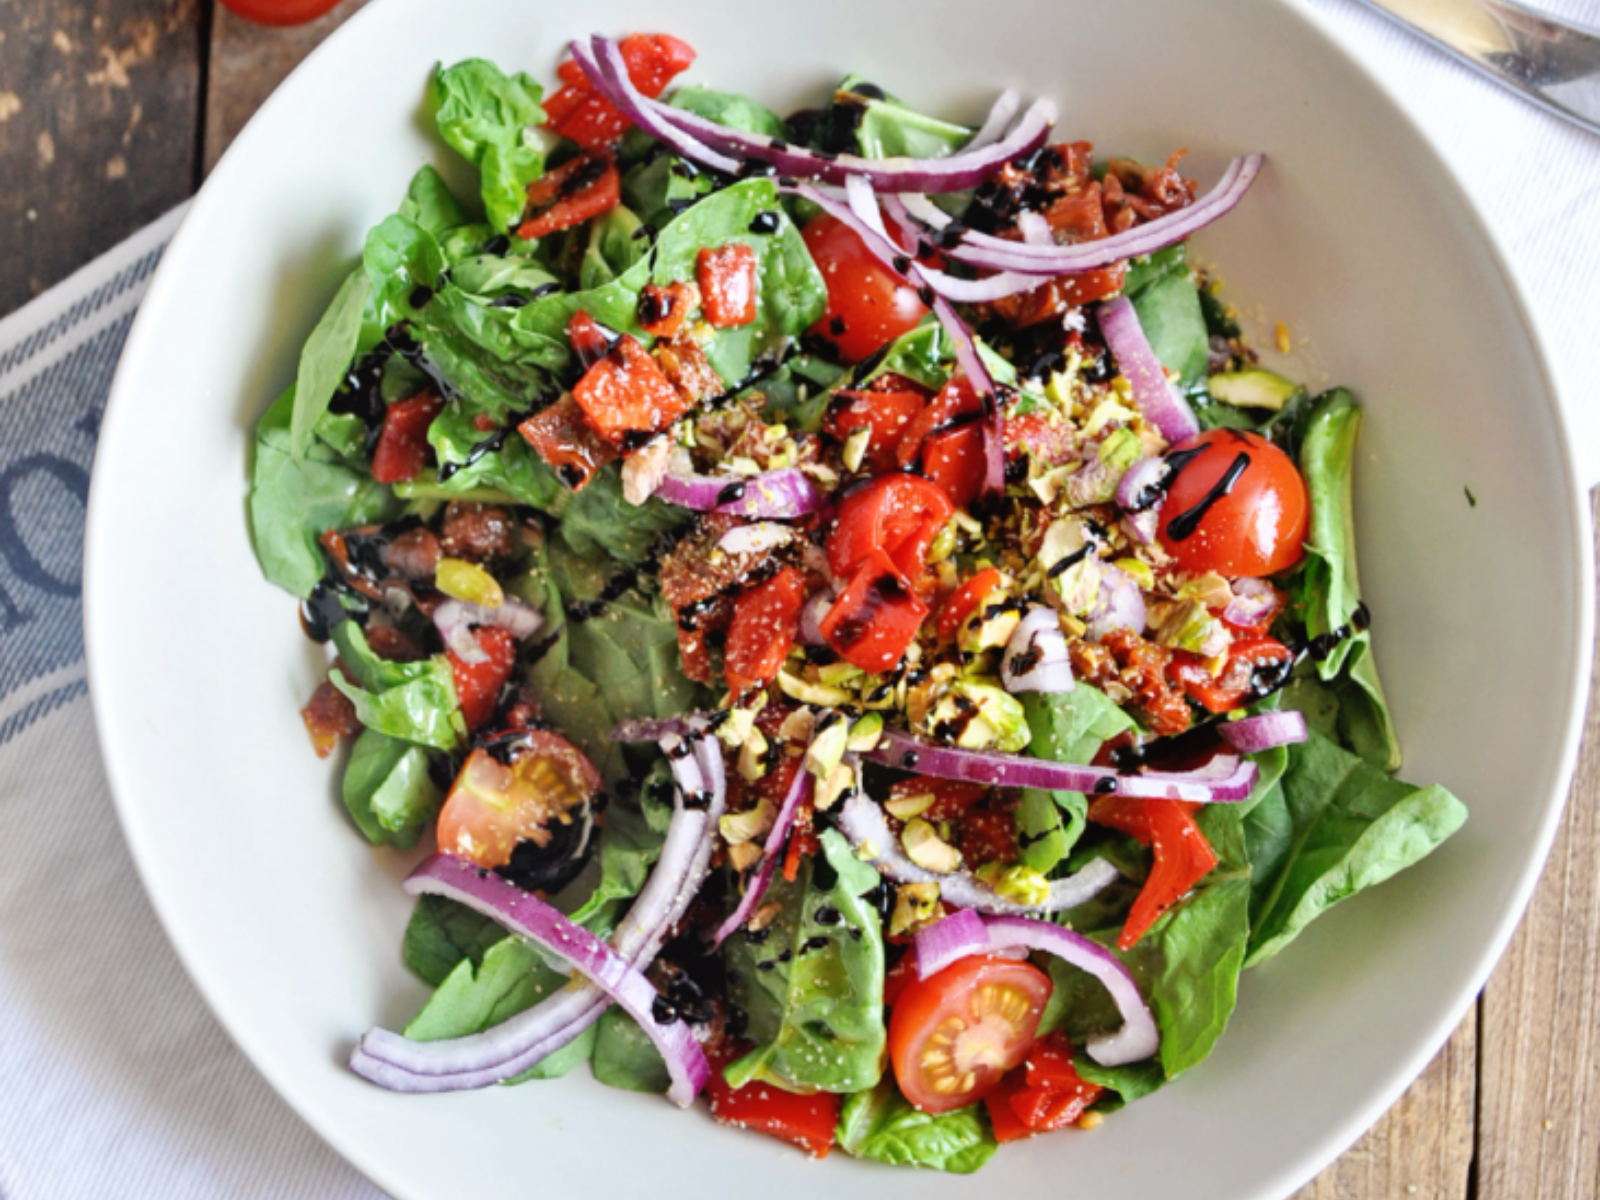 Spinach Salad with Pistachios and Sun-Dried Tomatoes